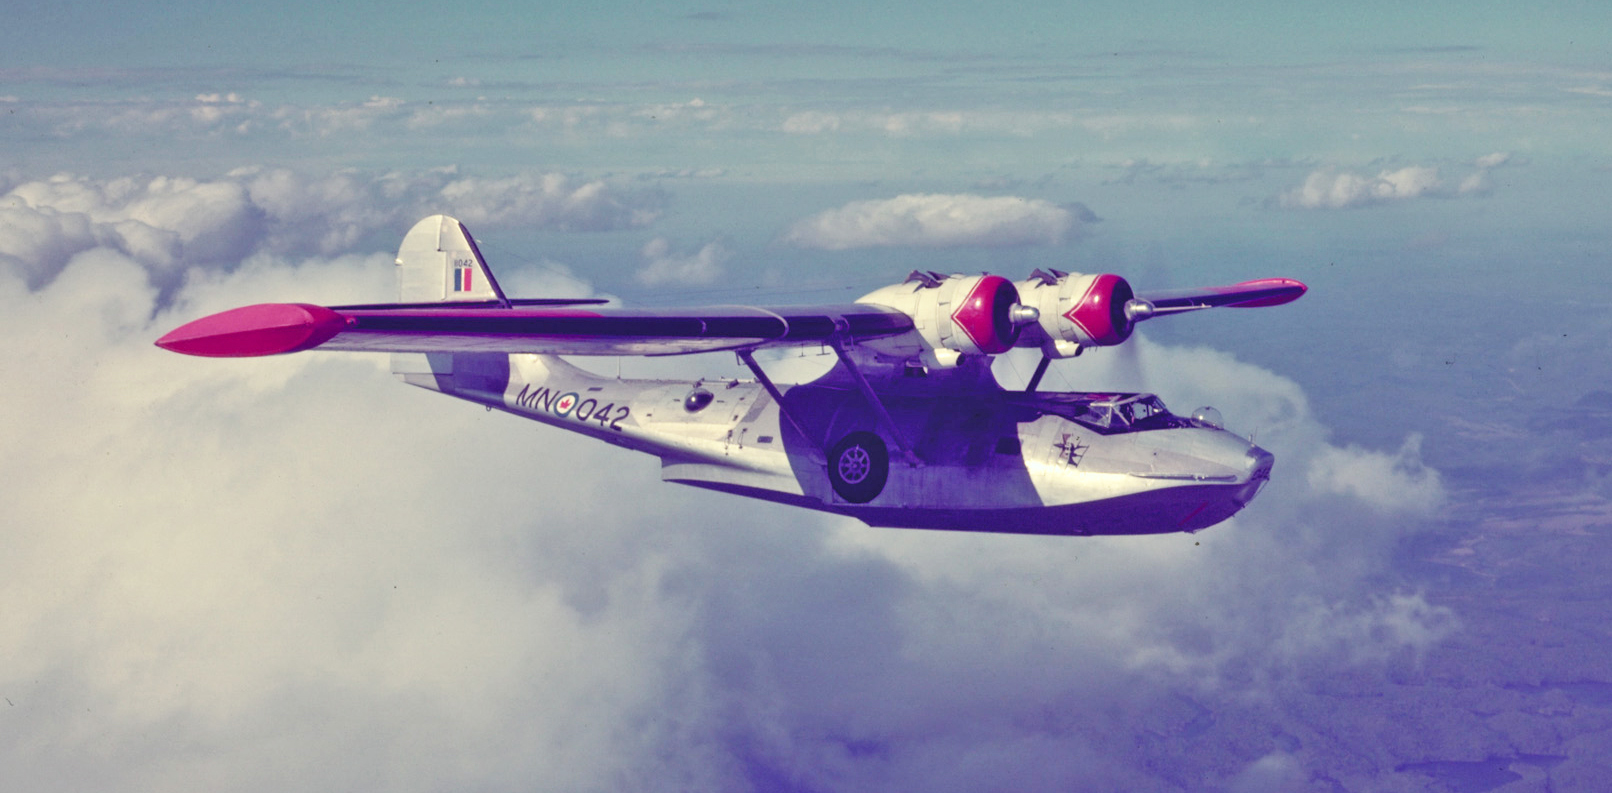 A Canso aircraft in flight. PHOTO: DND Archives, PC-842